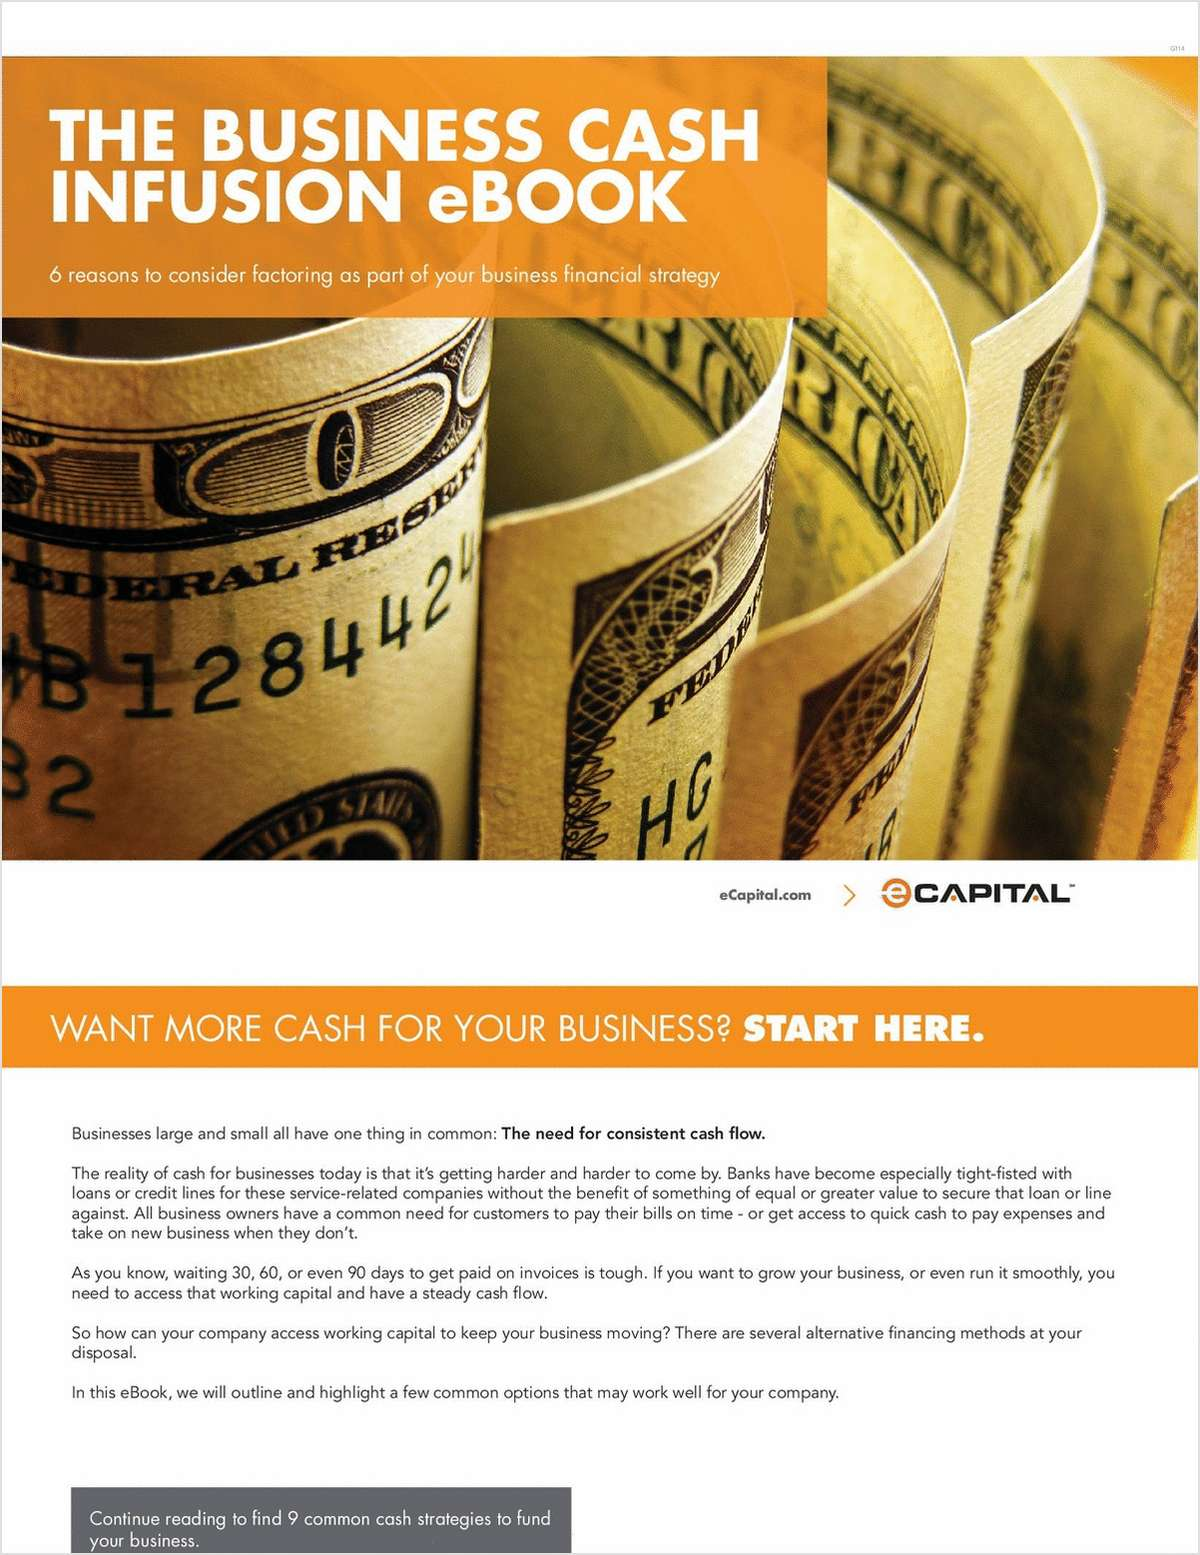 The Business Cash Infusion eBook